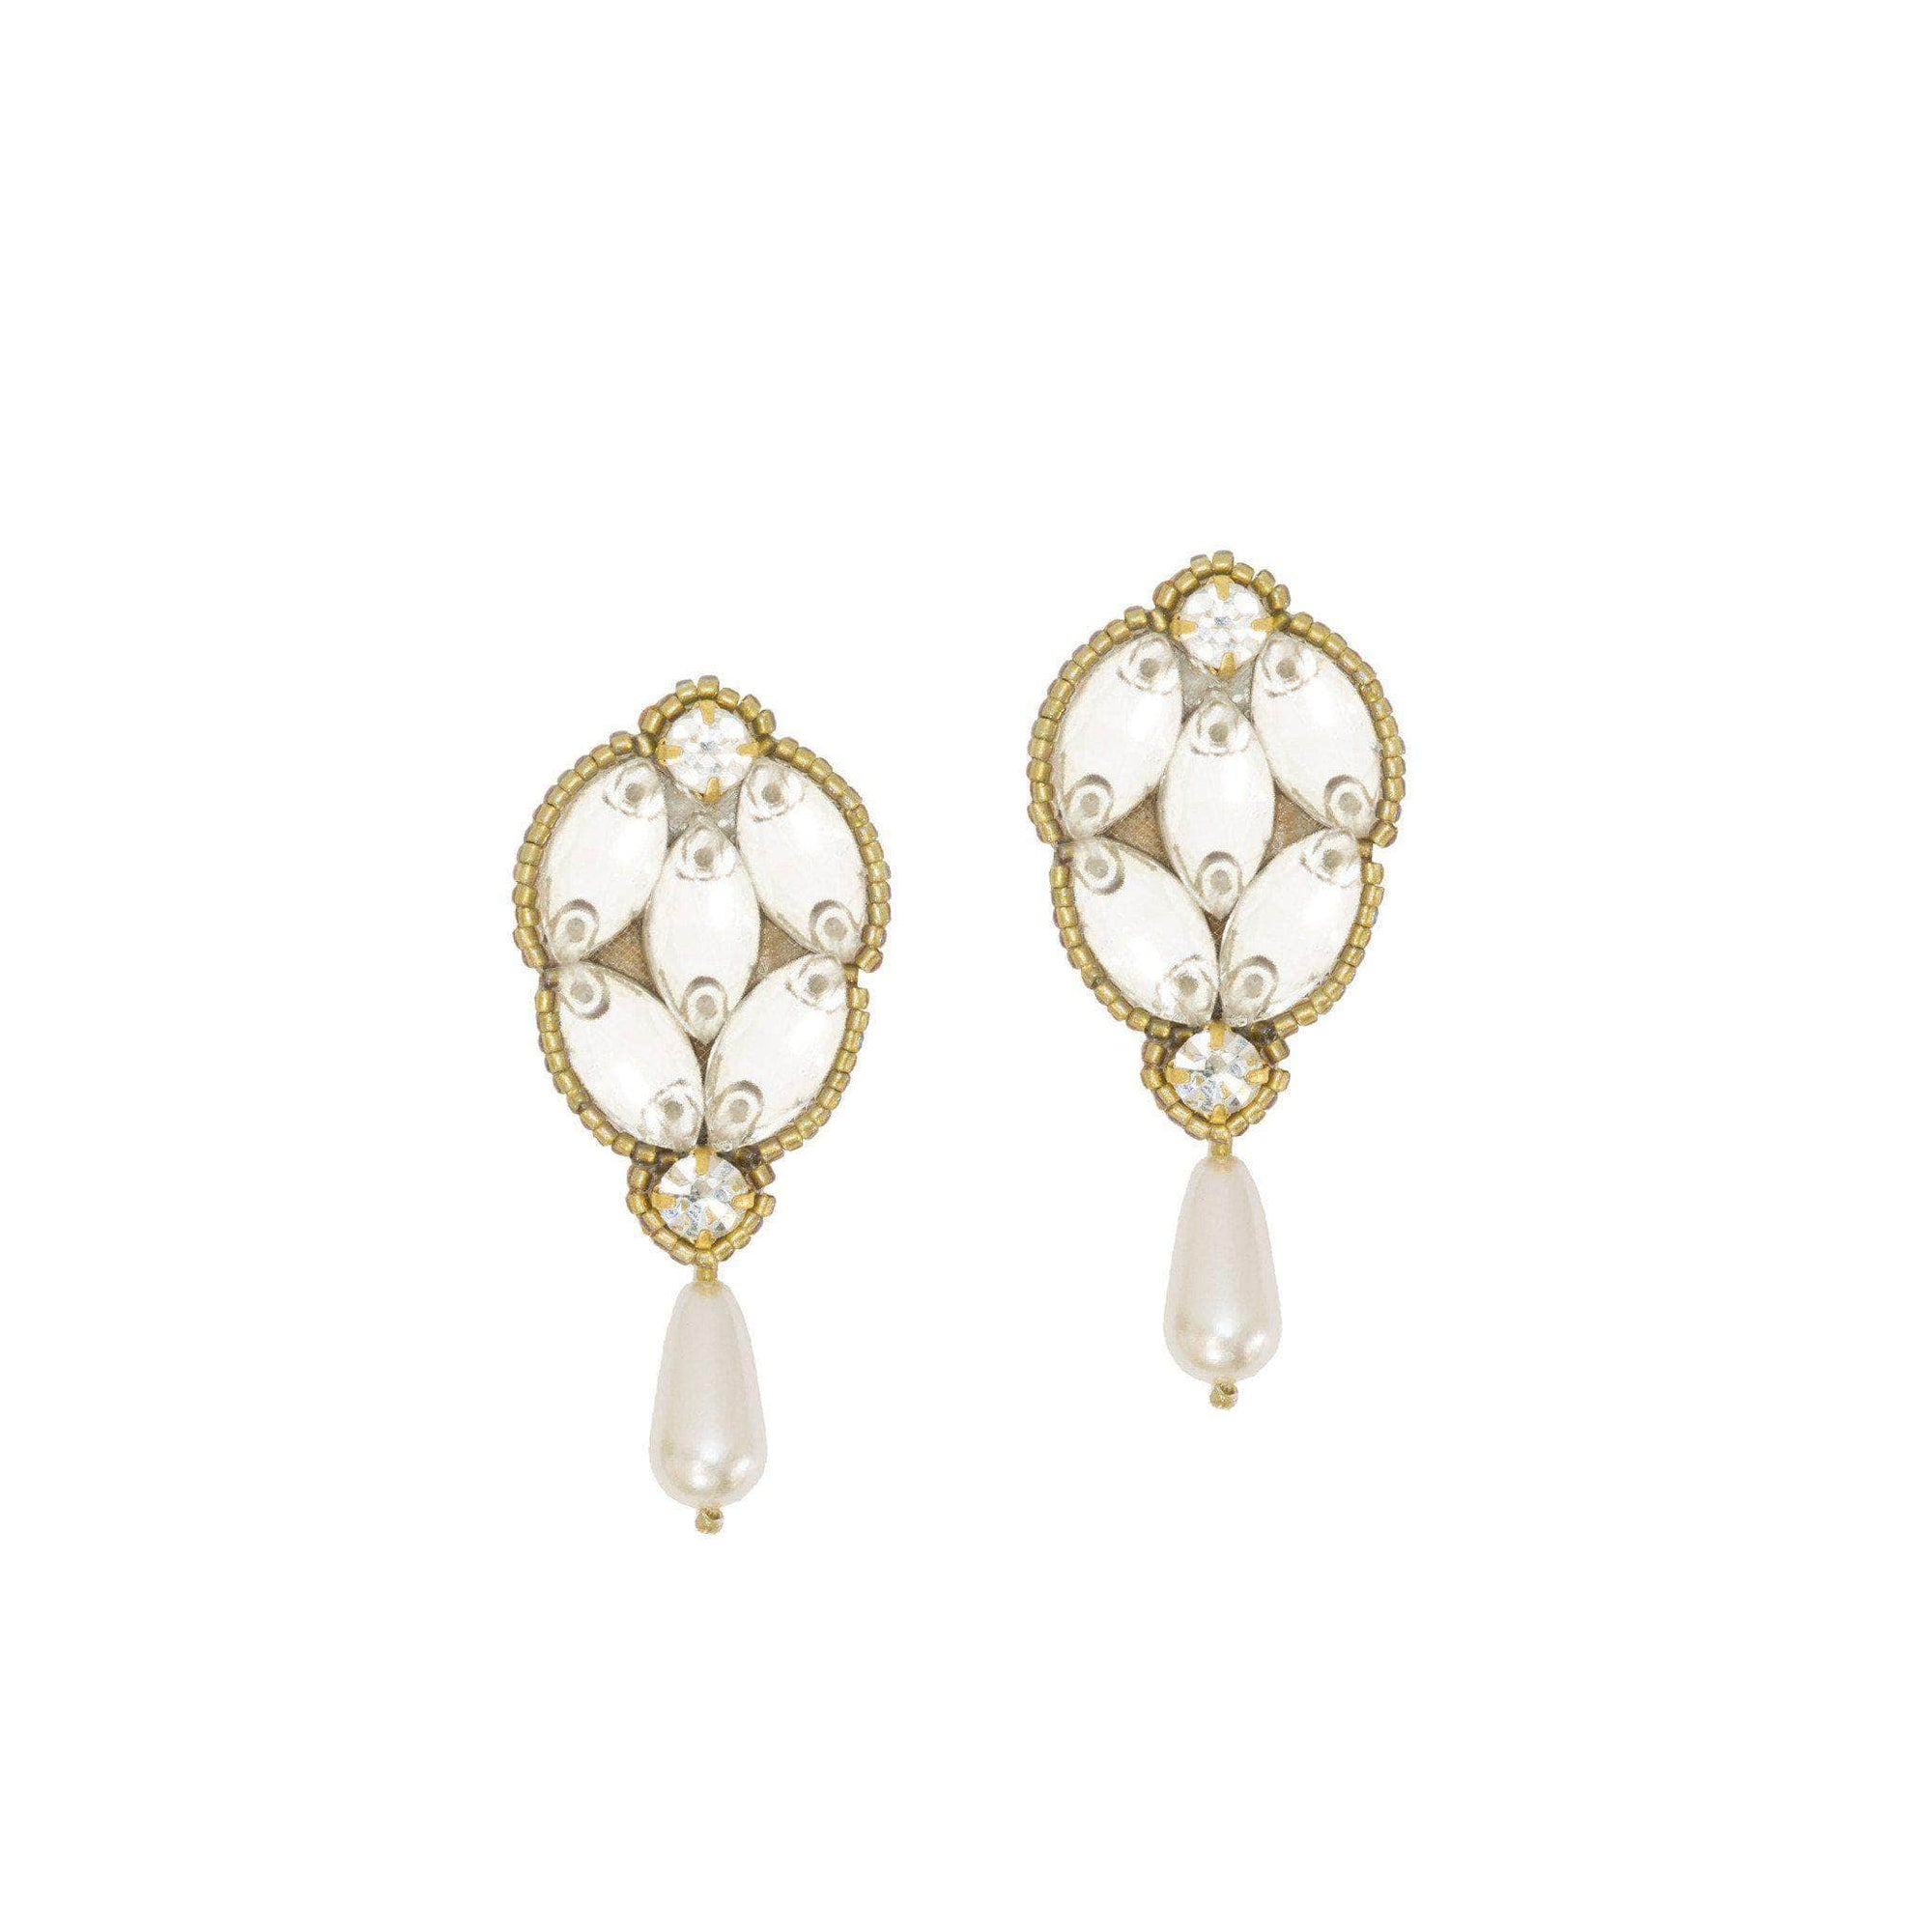 Wedding Earring Gold Gold crystal and pearl wedding earrings - 'Saffie'